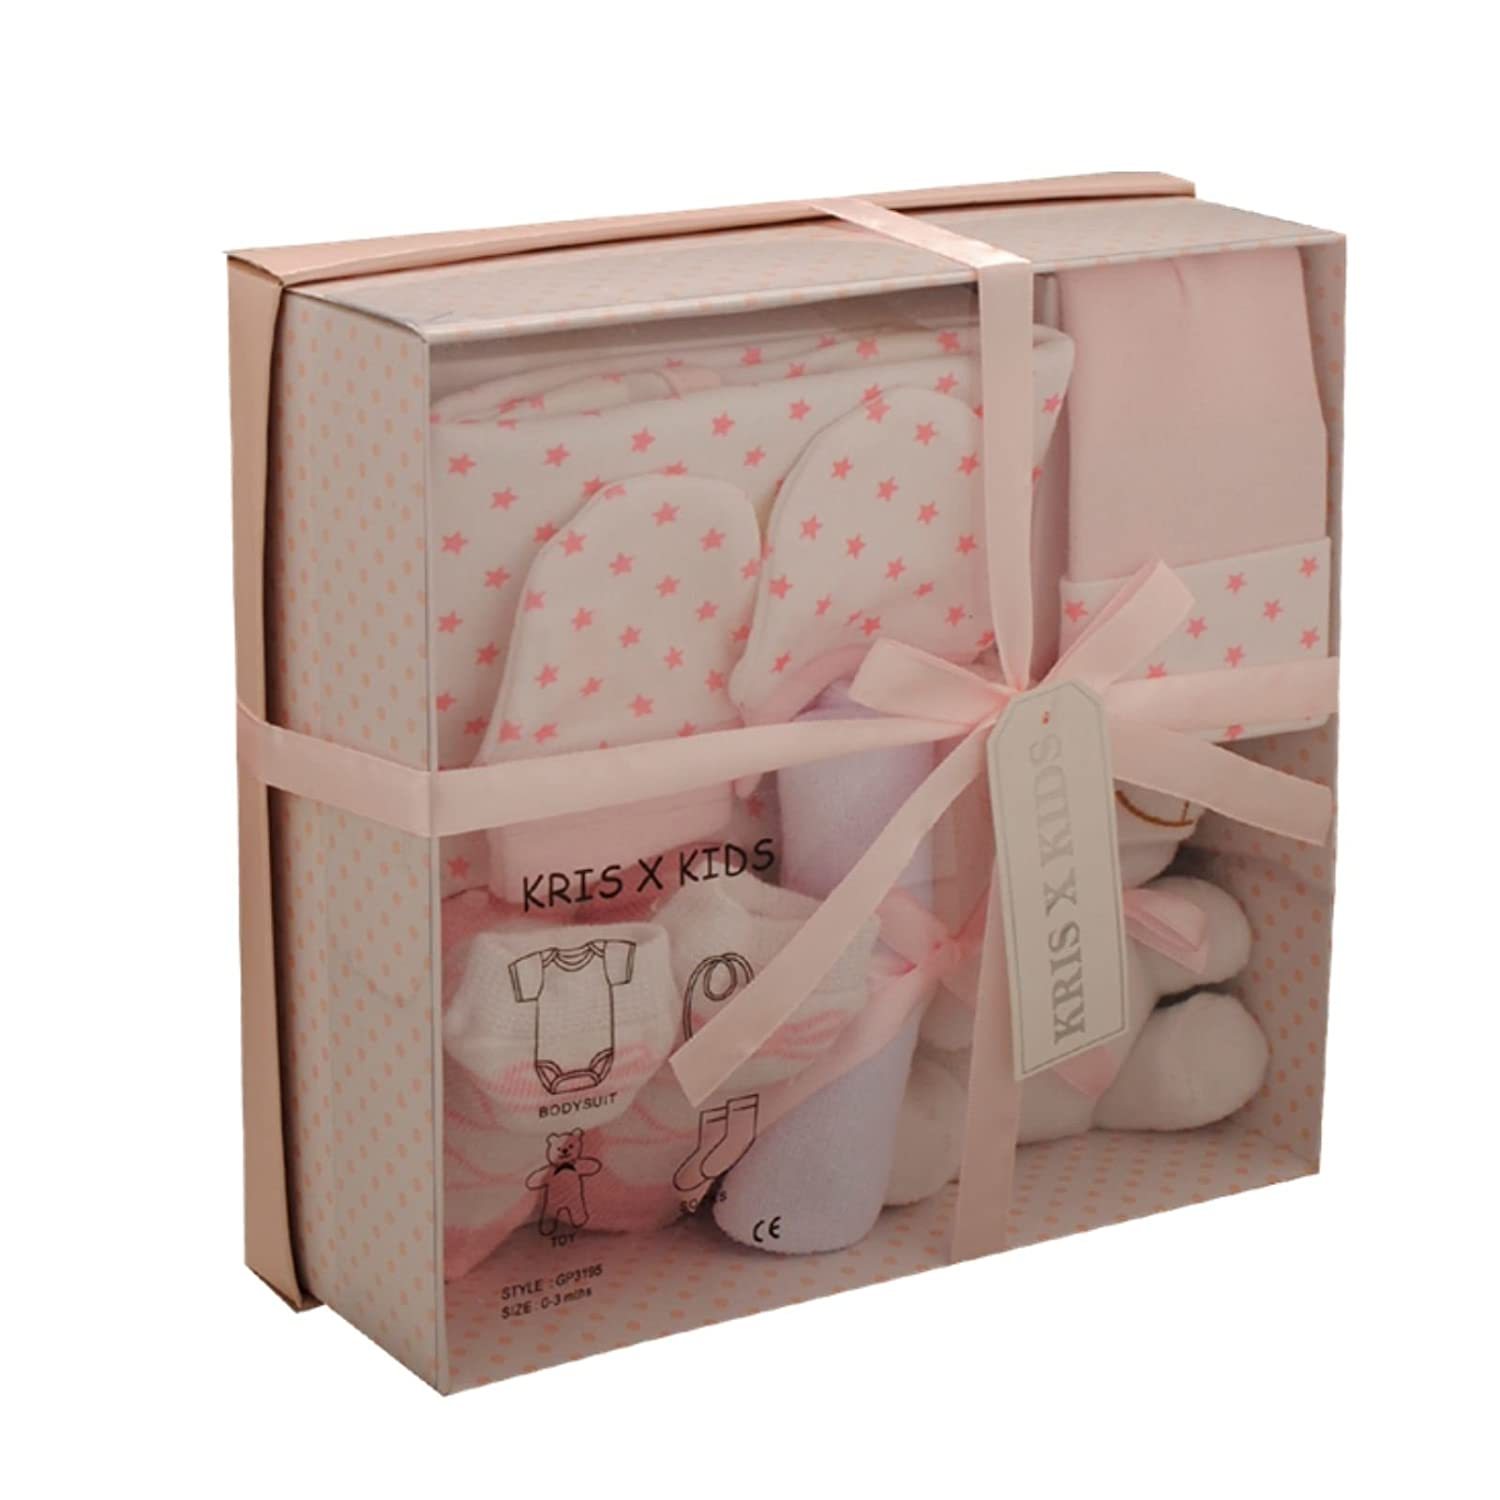 Baby Gift Set - Newborn or Baby Shower Gift Box/Hamper for Boy or Girl Blue 0-3 Months Kris X Kids